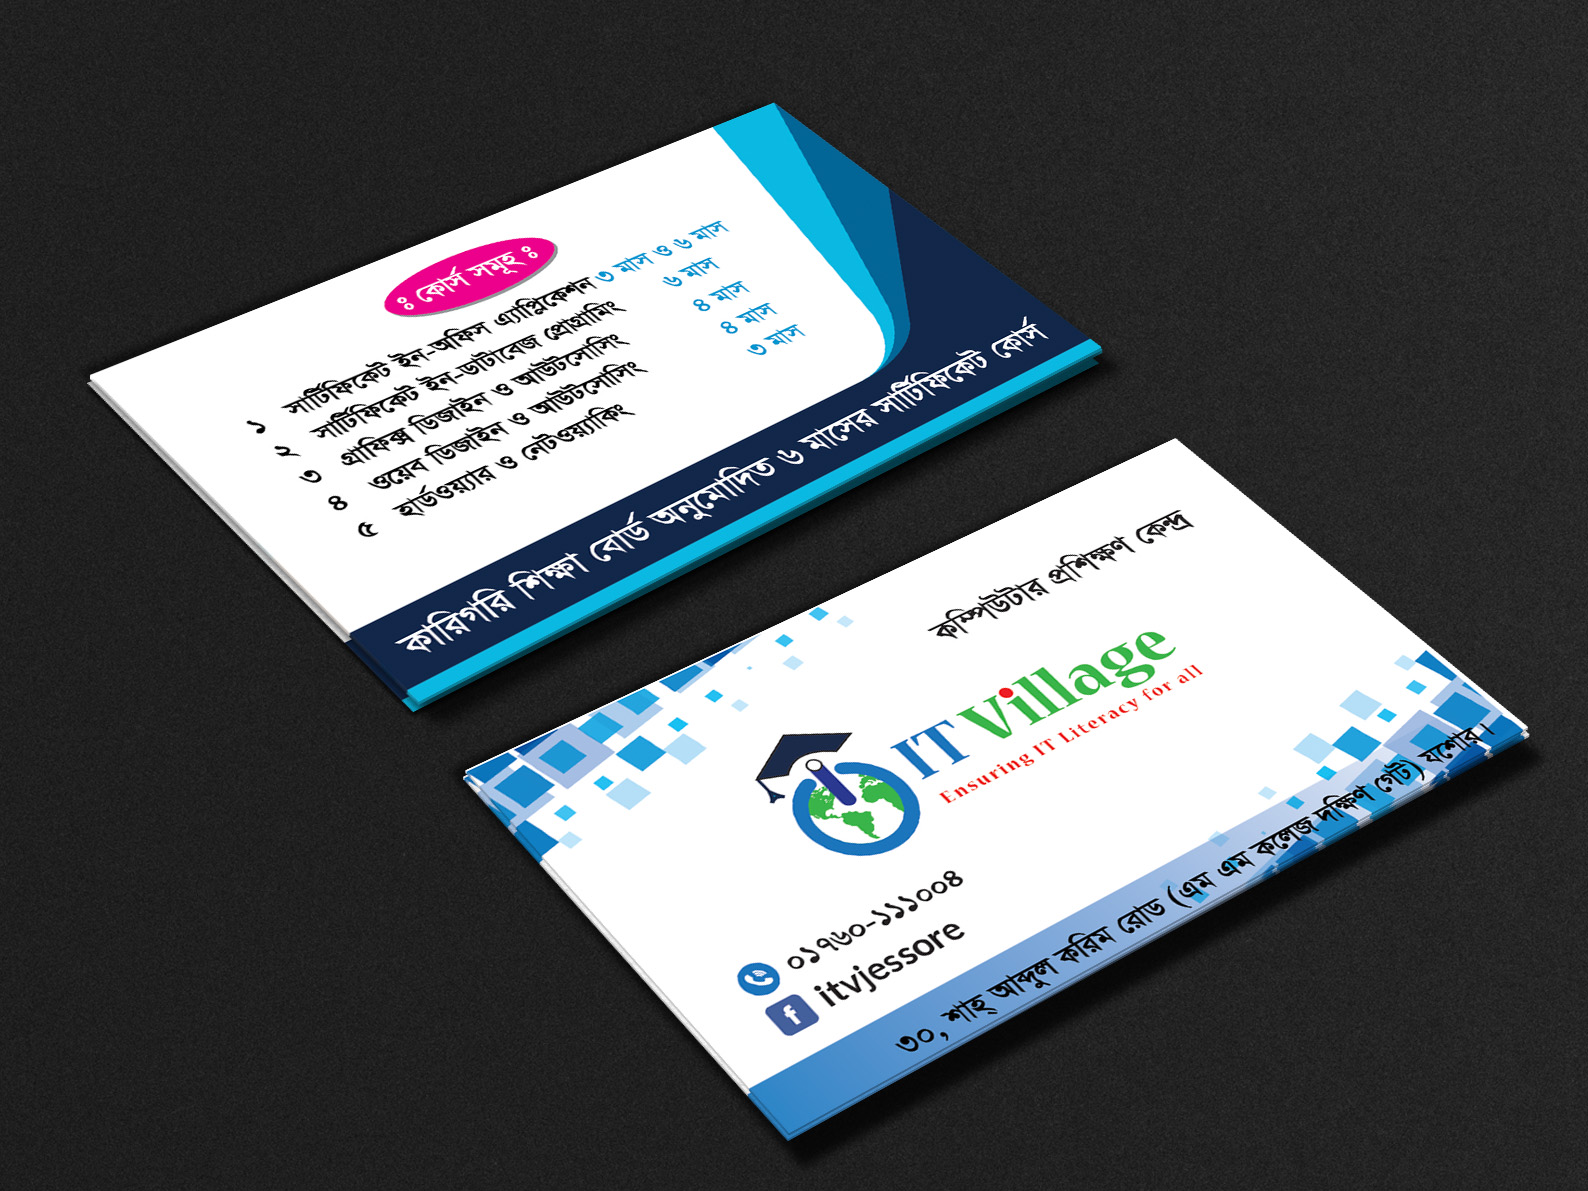 I'll design any type of business card in 4 hours